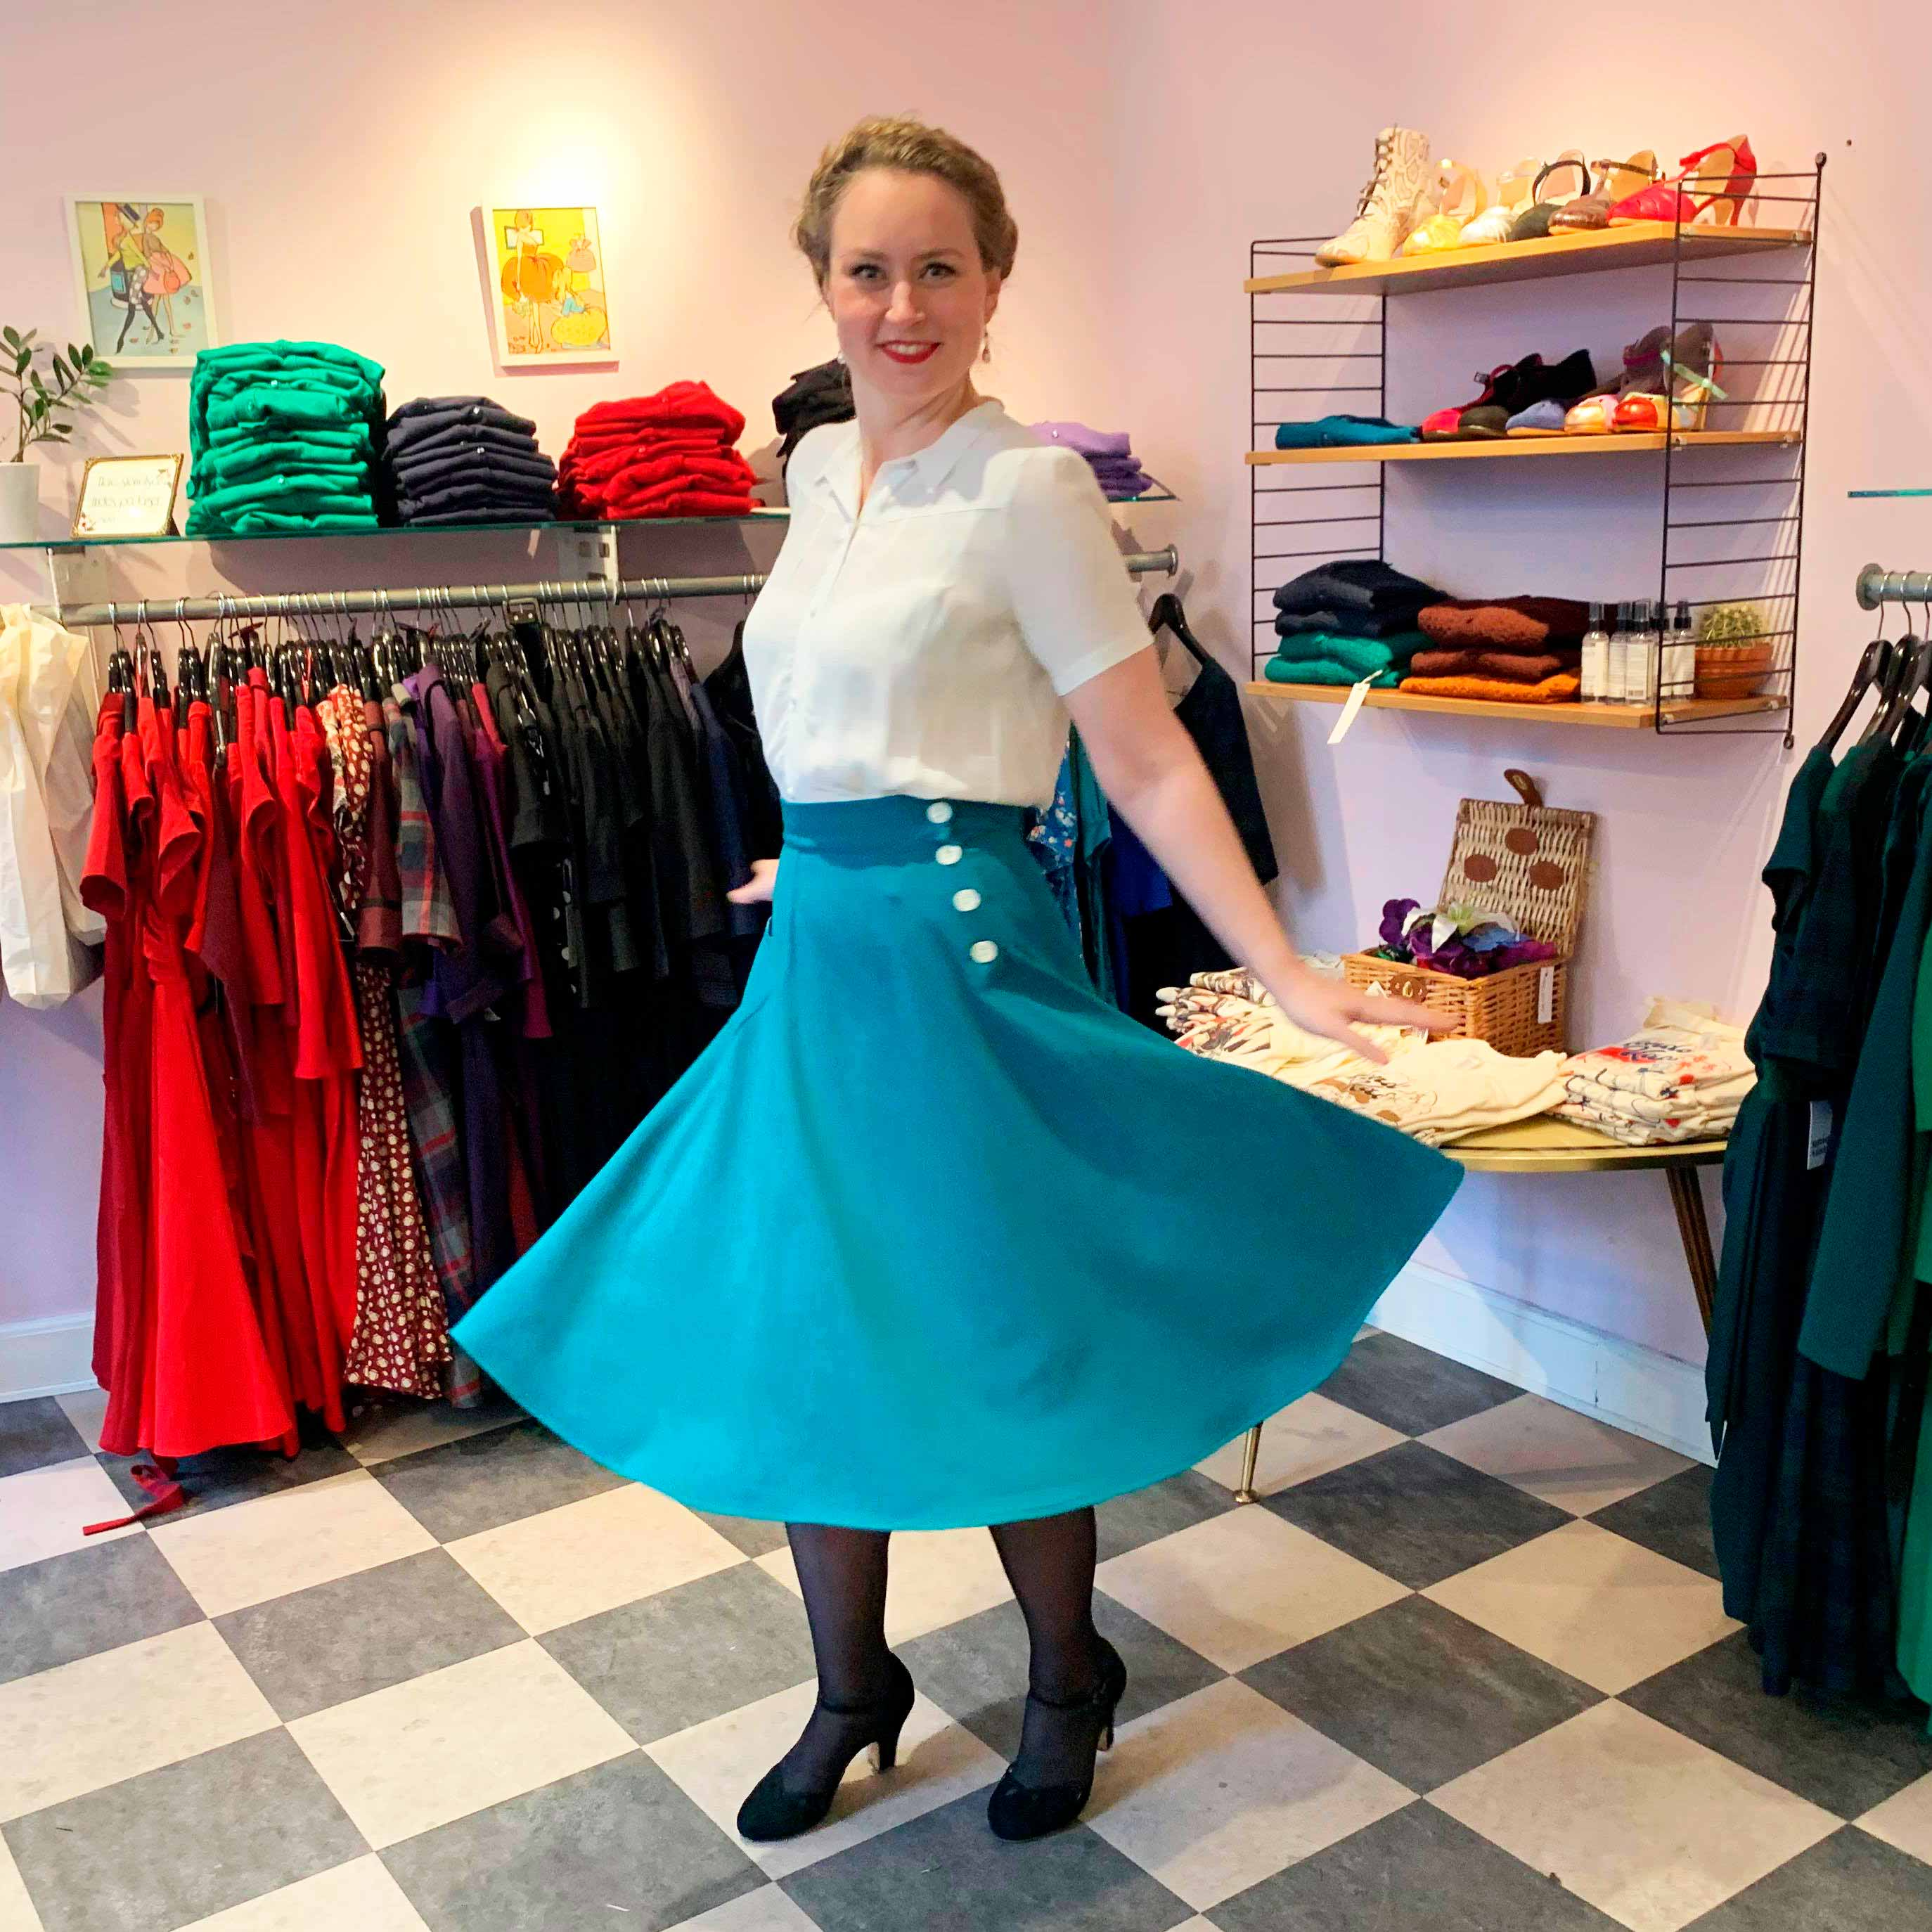 aline skirt in teal from The House Of Foxy